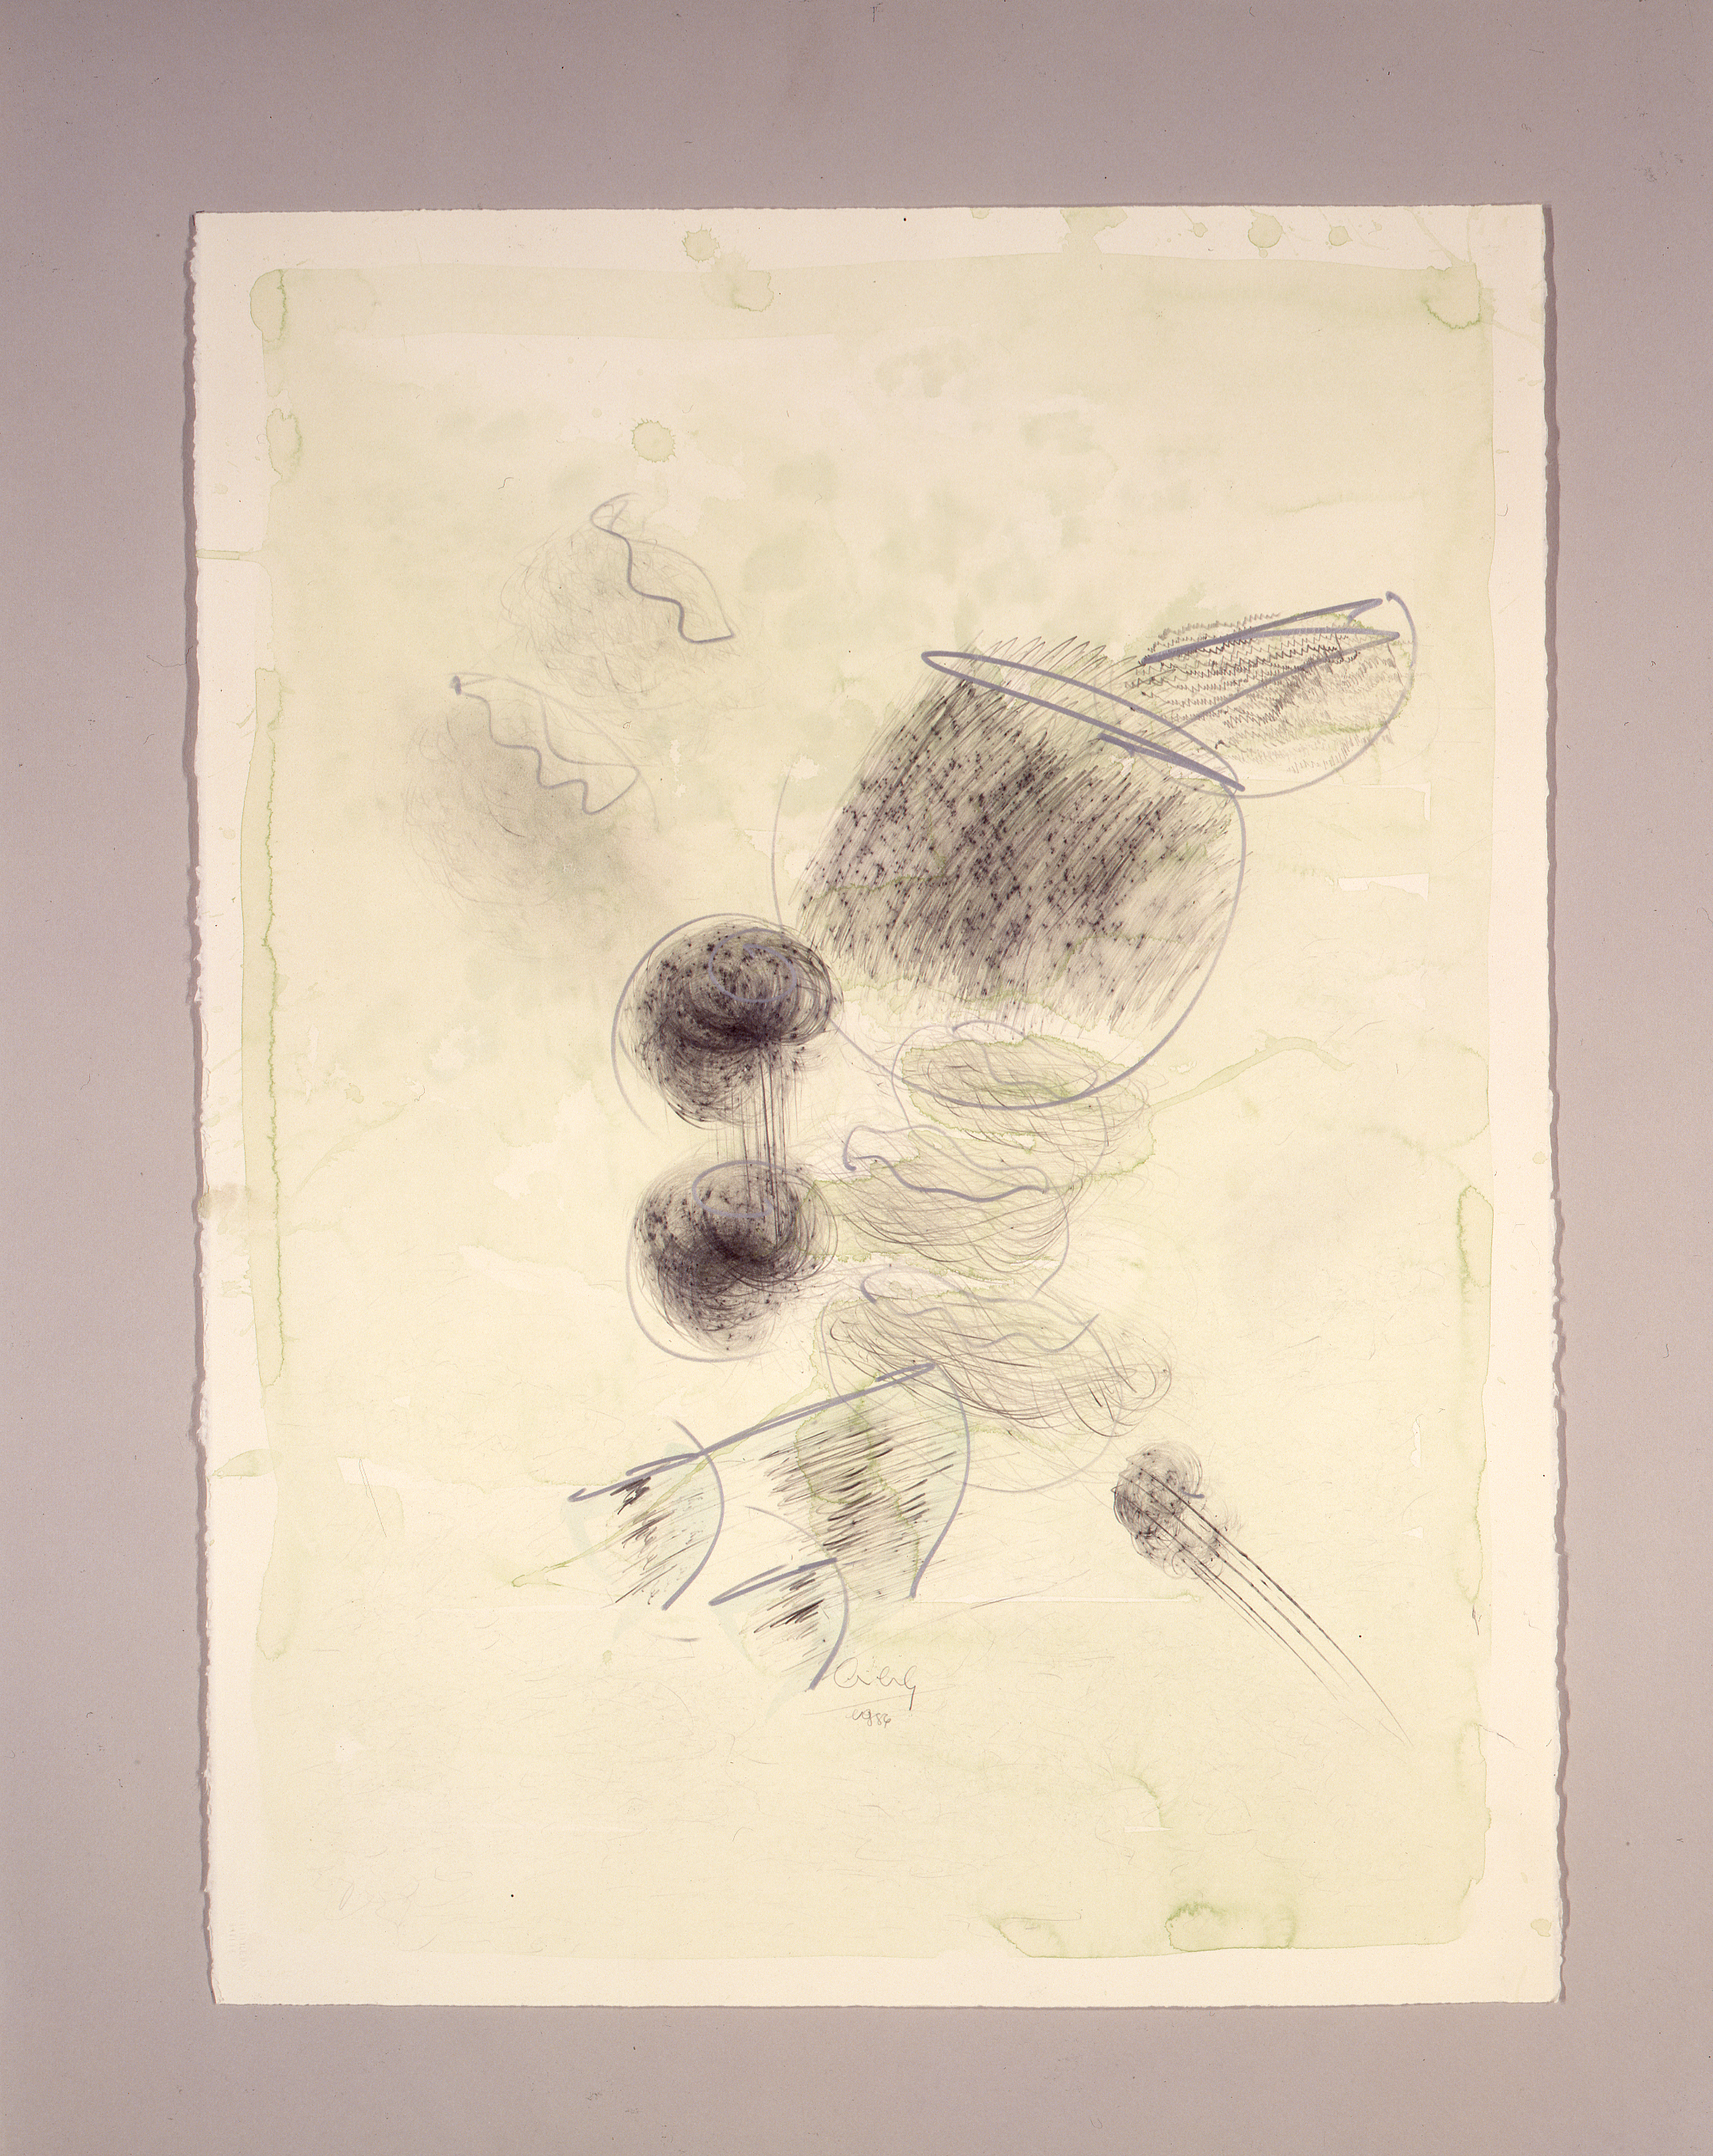 Dale Chihuly, Macchia Drawing #27, (1982, graphite and watercolor on paper, 30 x 22 inches), DC.85